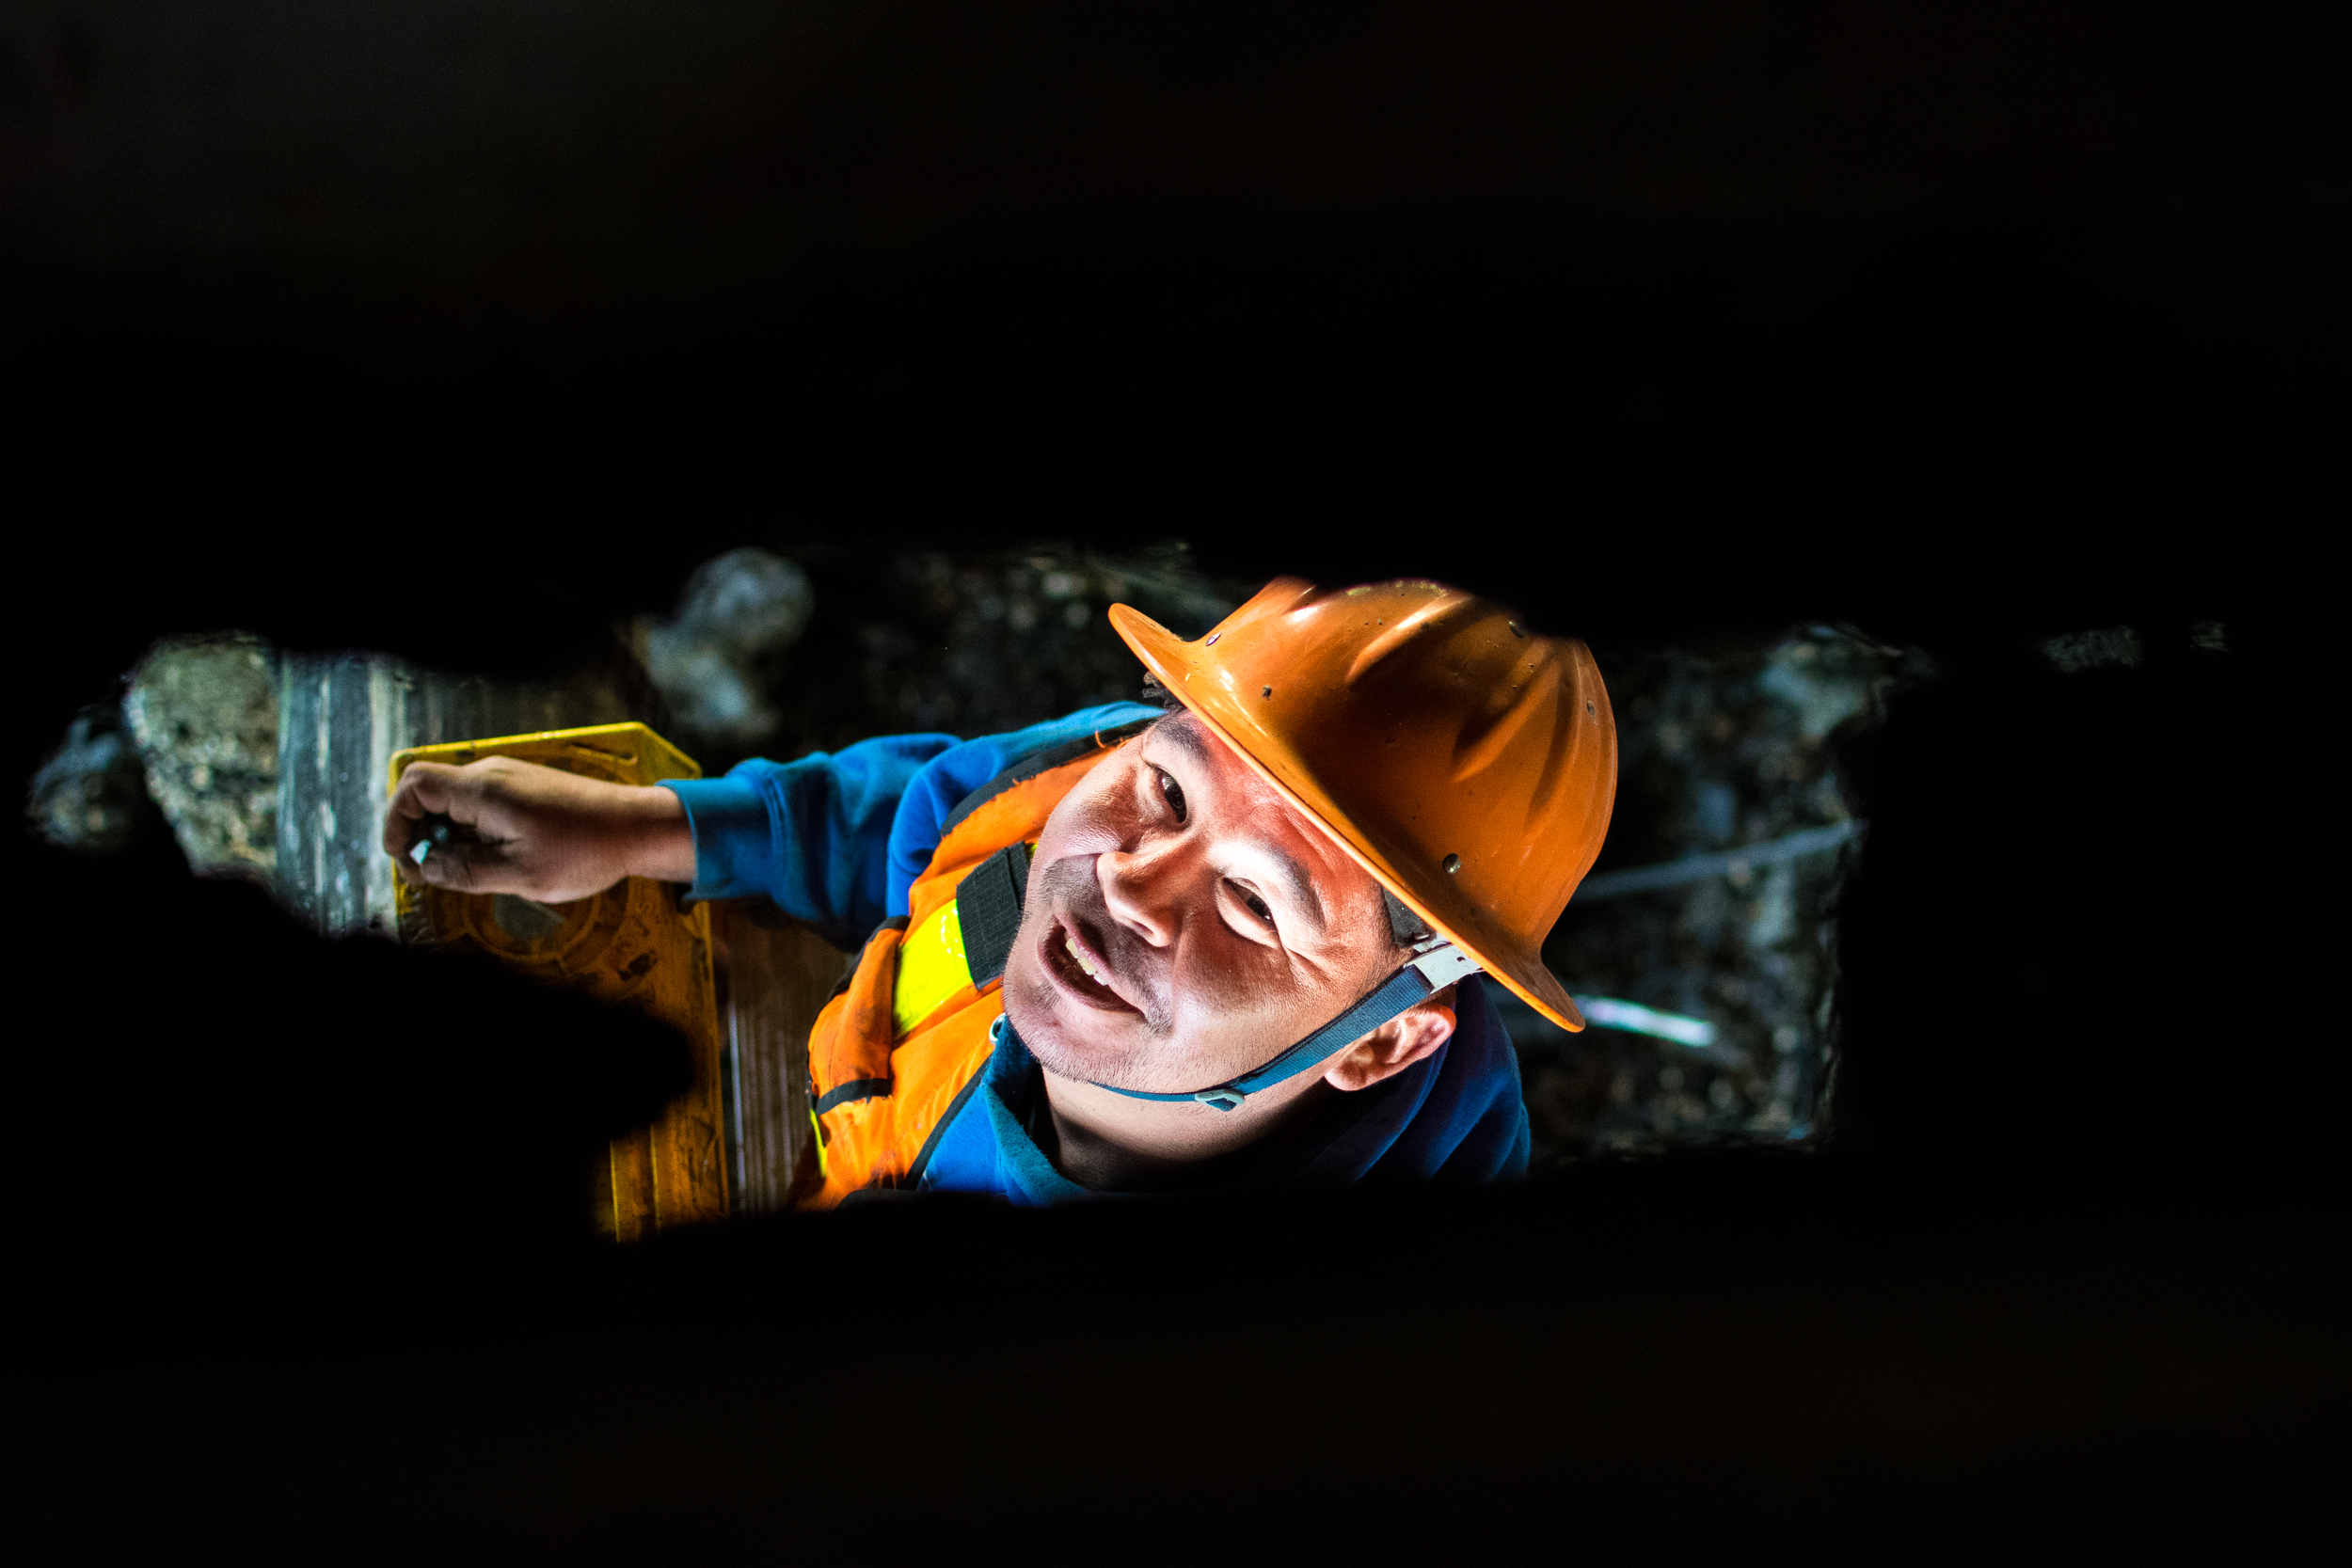 Spotted through a hole in the cannery's floorboards, Kake local, Tyrone Paul grins while stabilizing a wood piling.